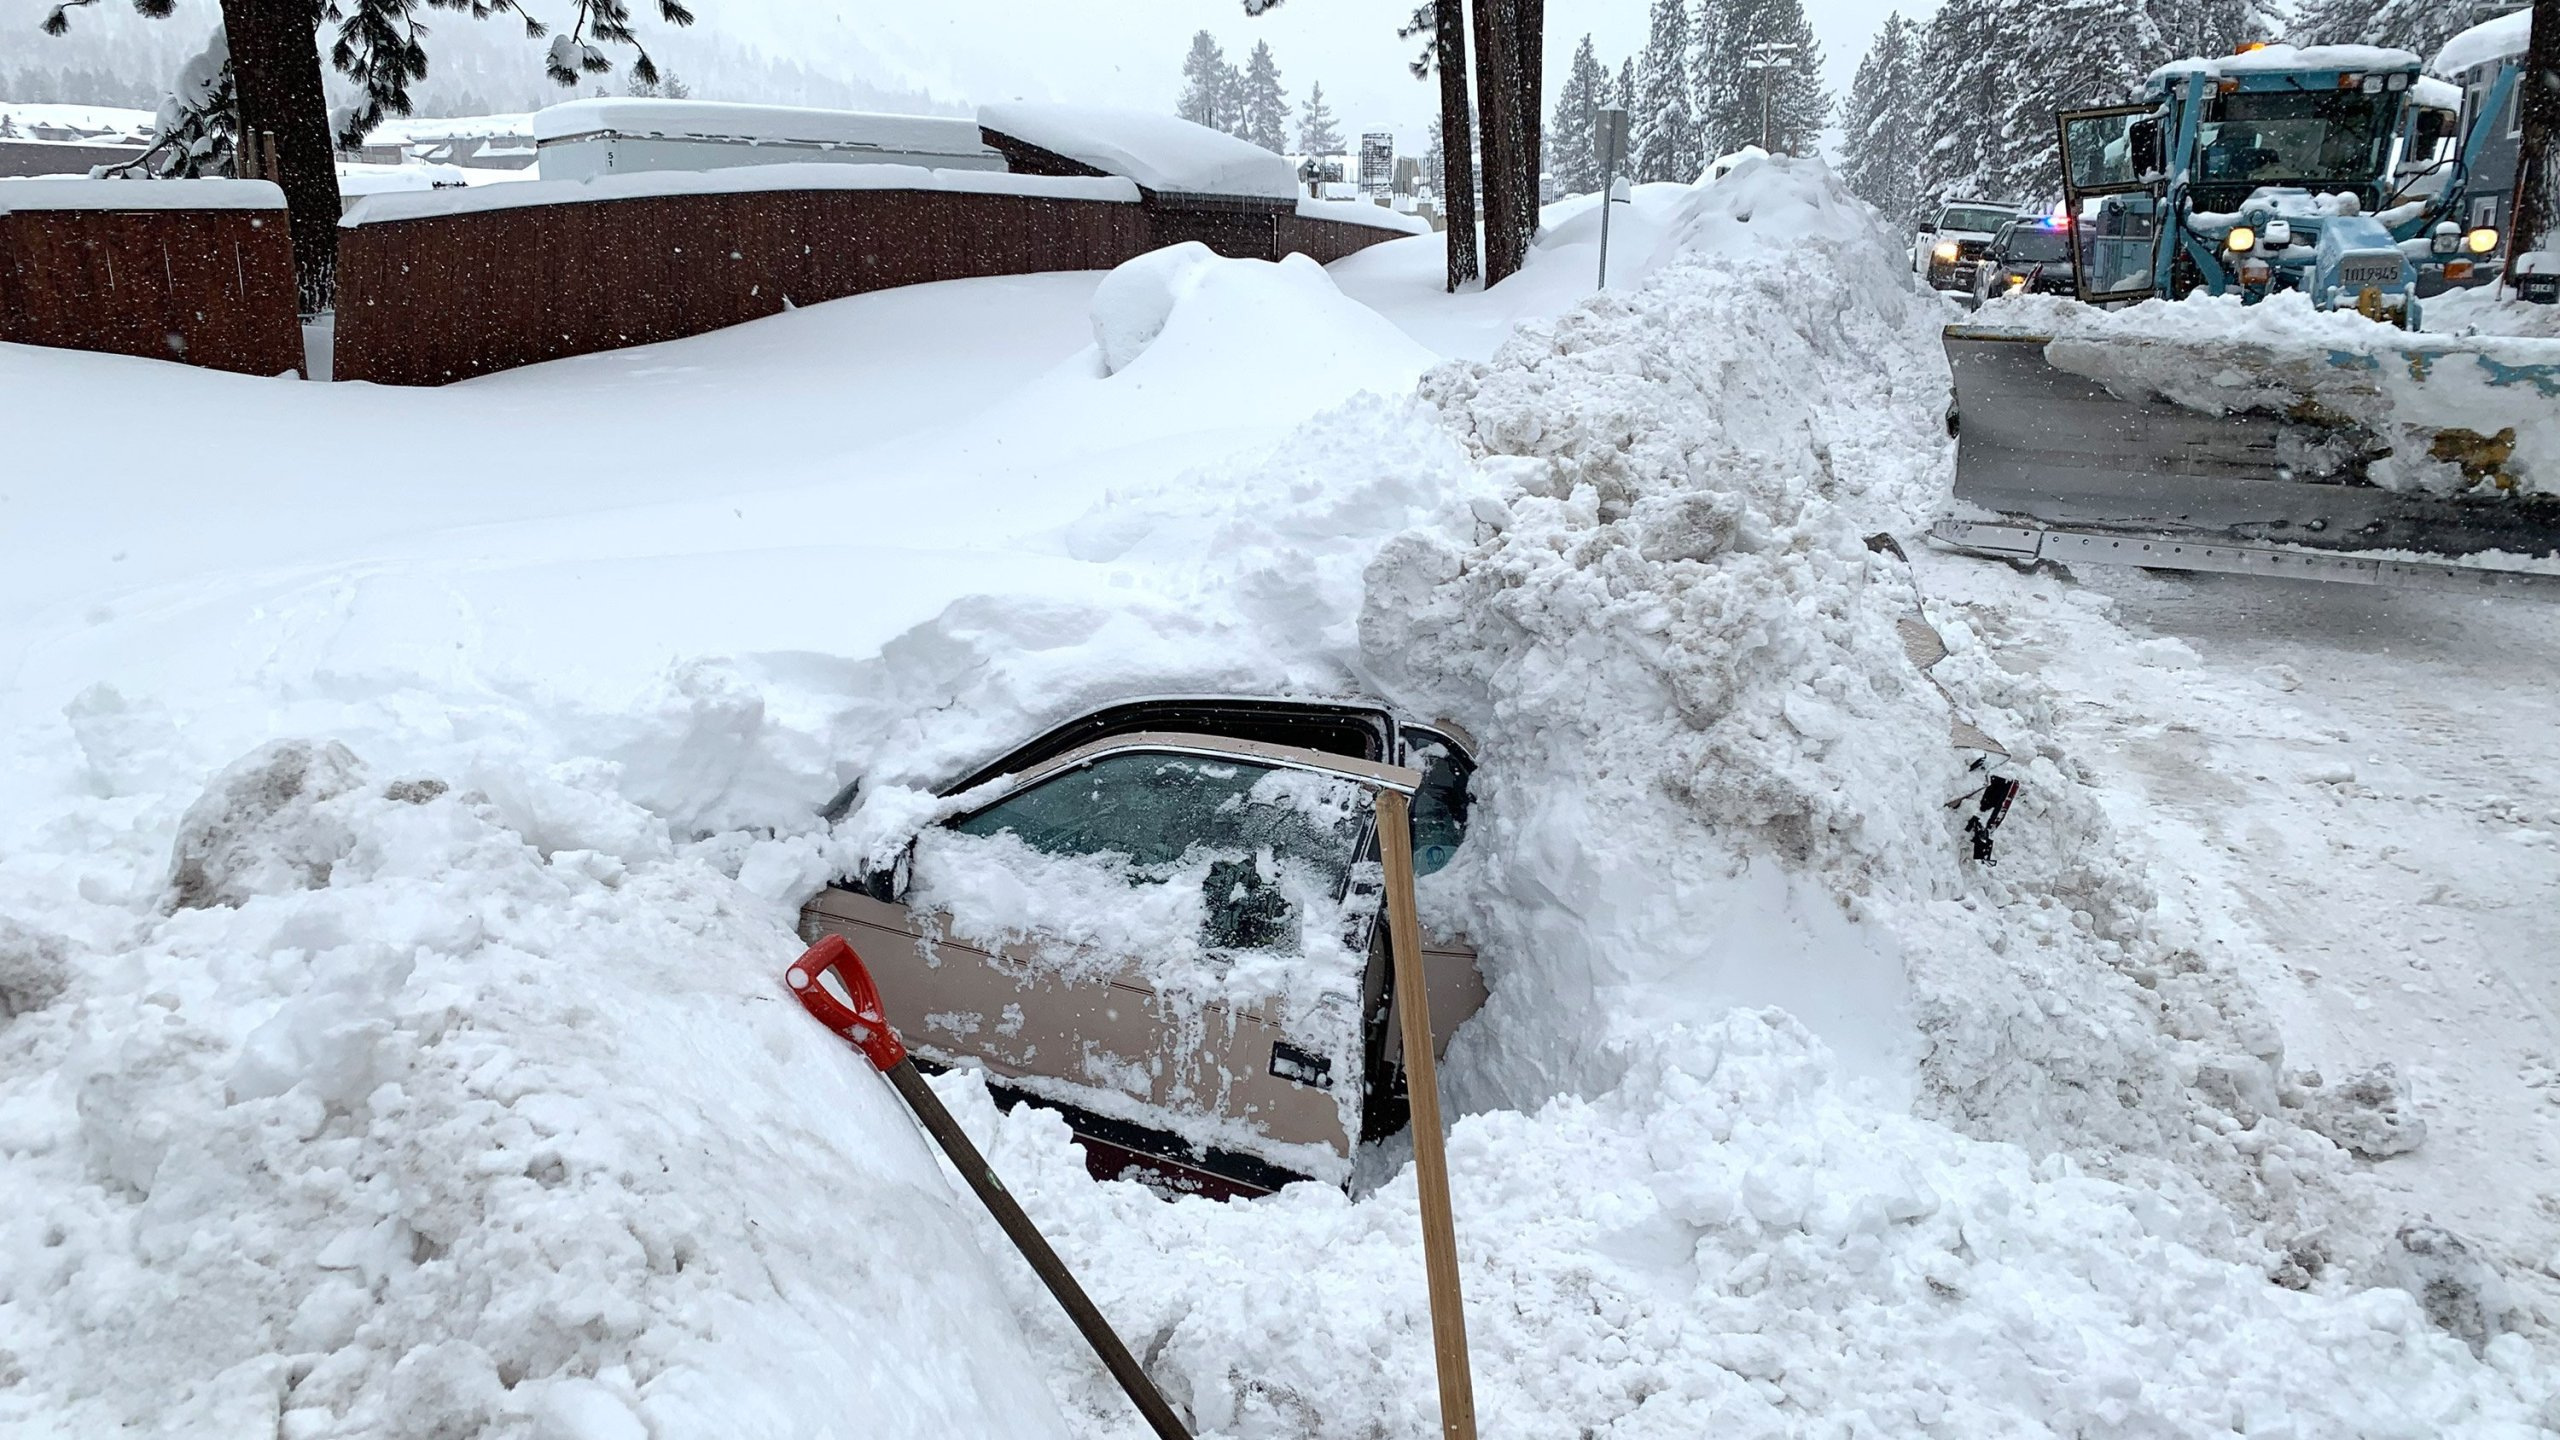 A woman said she was buried in the car for four to five hours. (Credit: City of South Lake Tahoe)